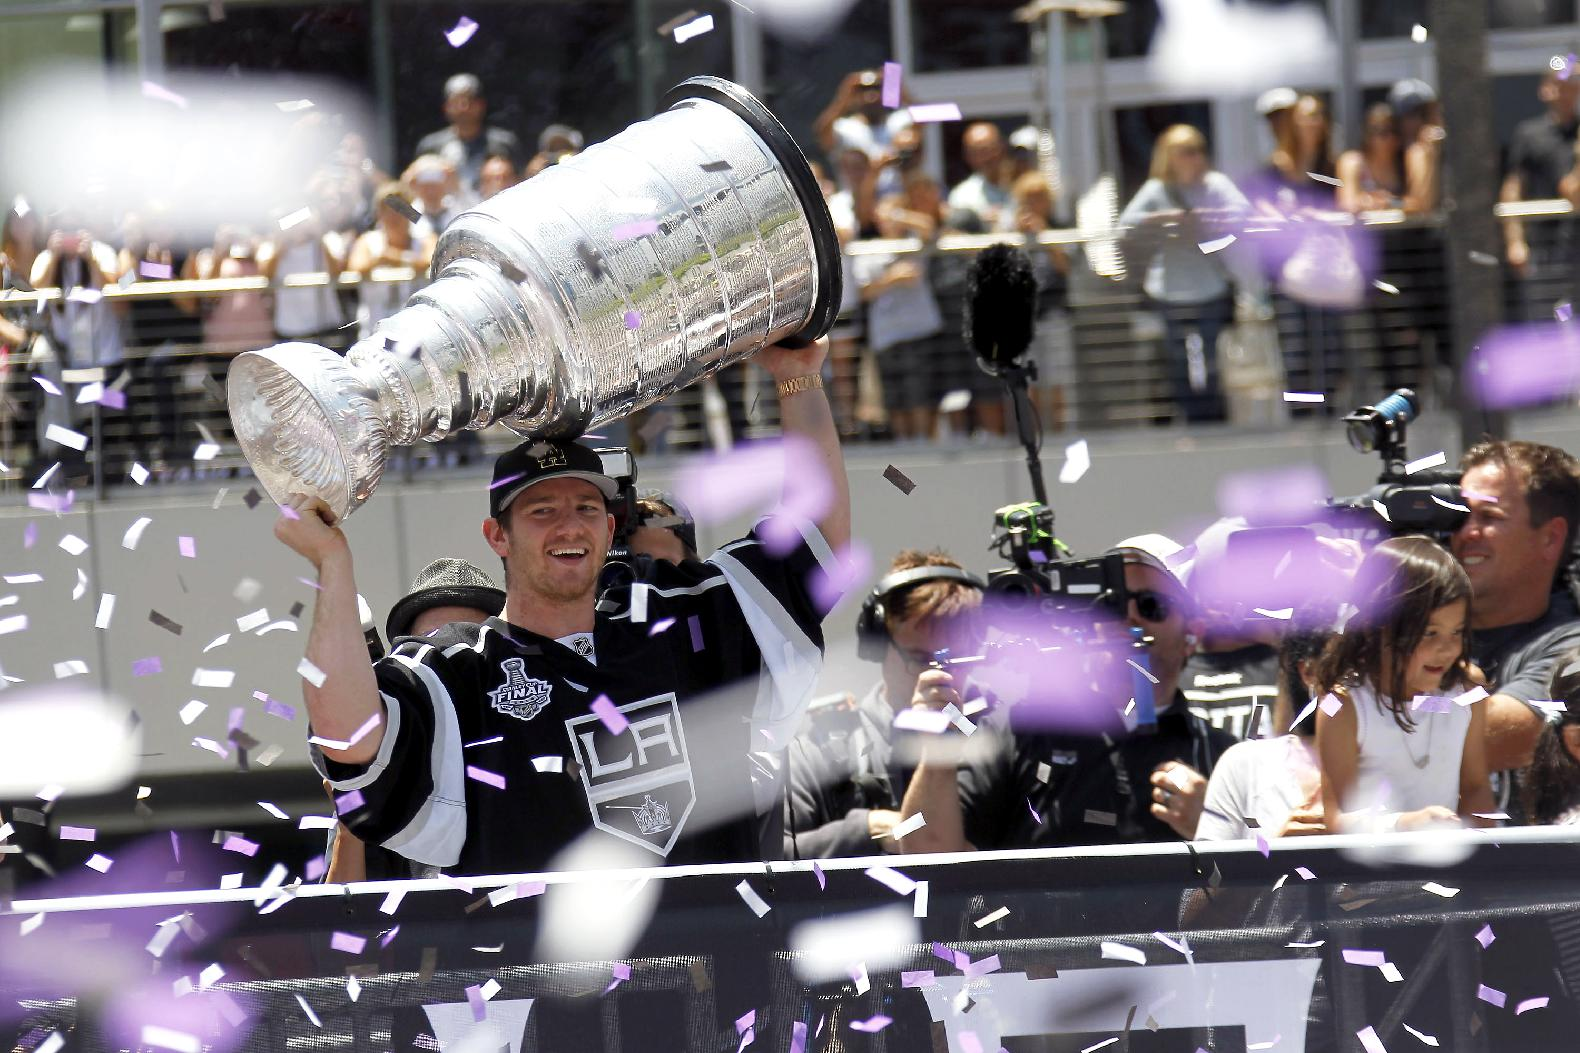 Kings Of The NHL: Los Angeles Loves That Winning Feeling, Take Poised Approach To Stanley Cup Repeat Bid